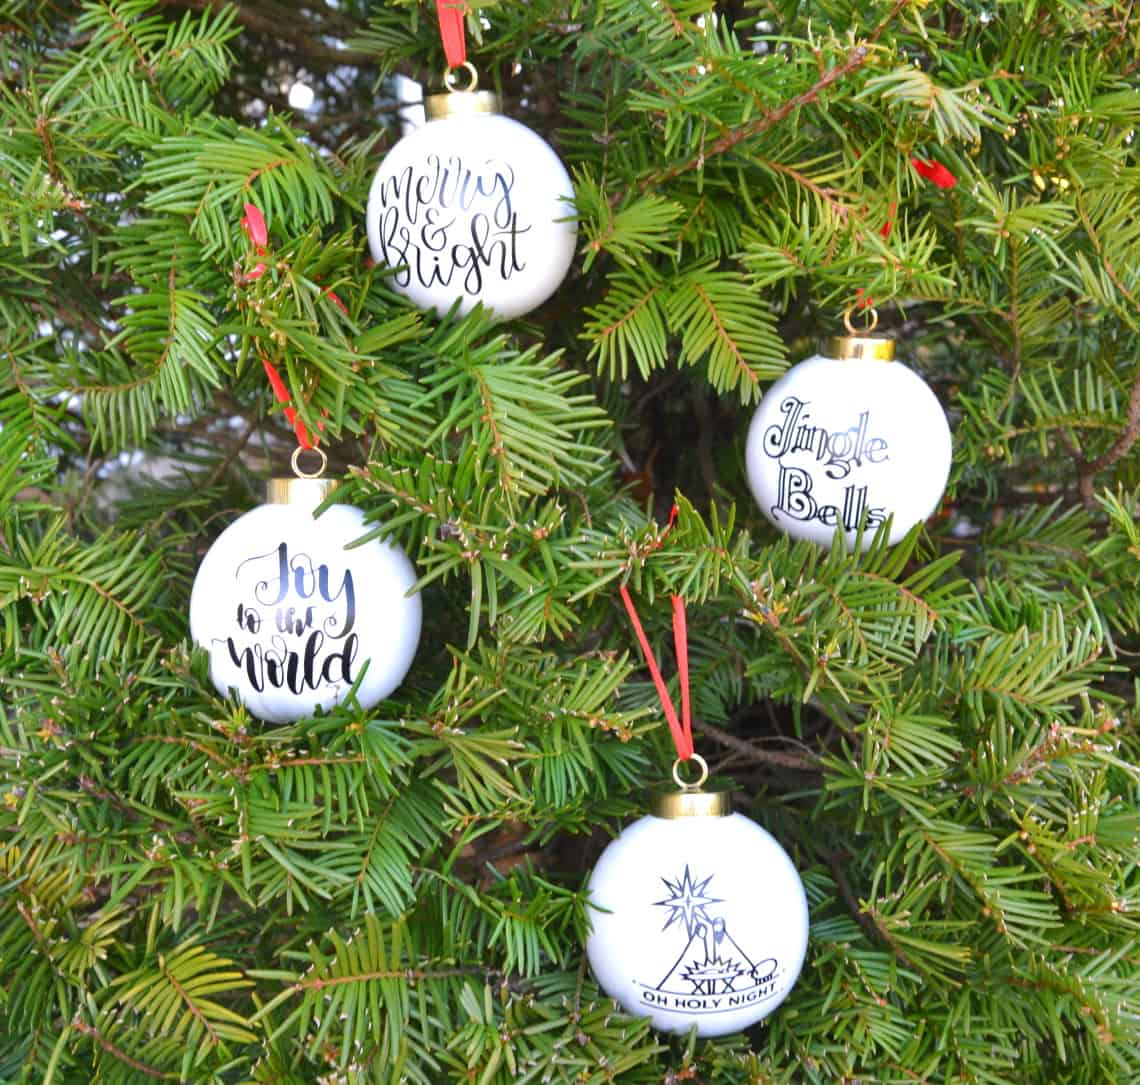 making christmas ornaments with cricut- 4 different ornaments decorated with vinyl cut by cricut maker